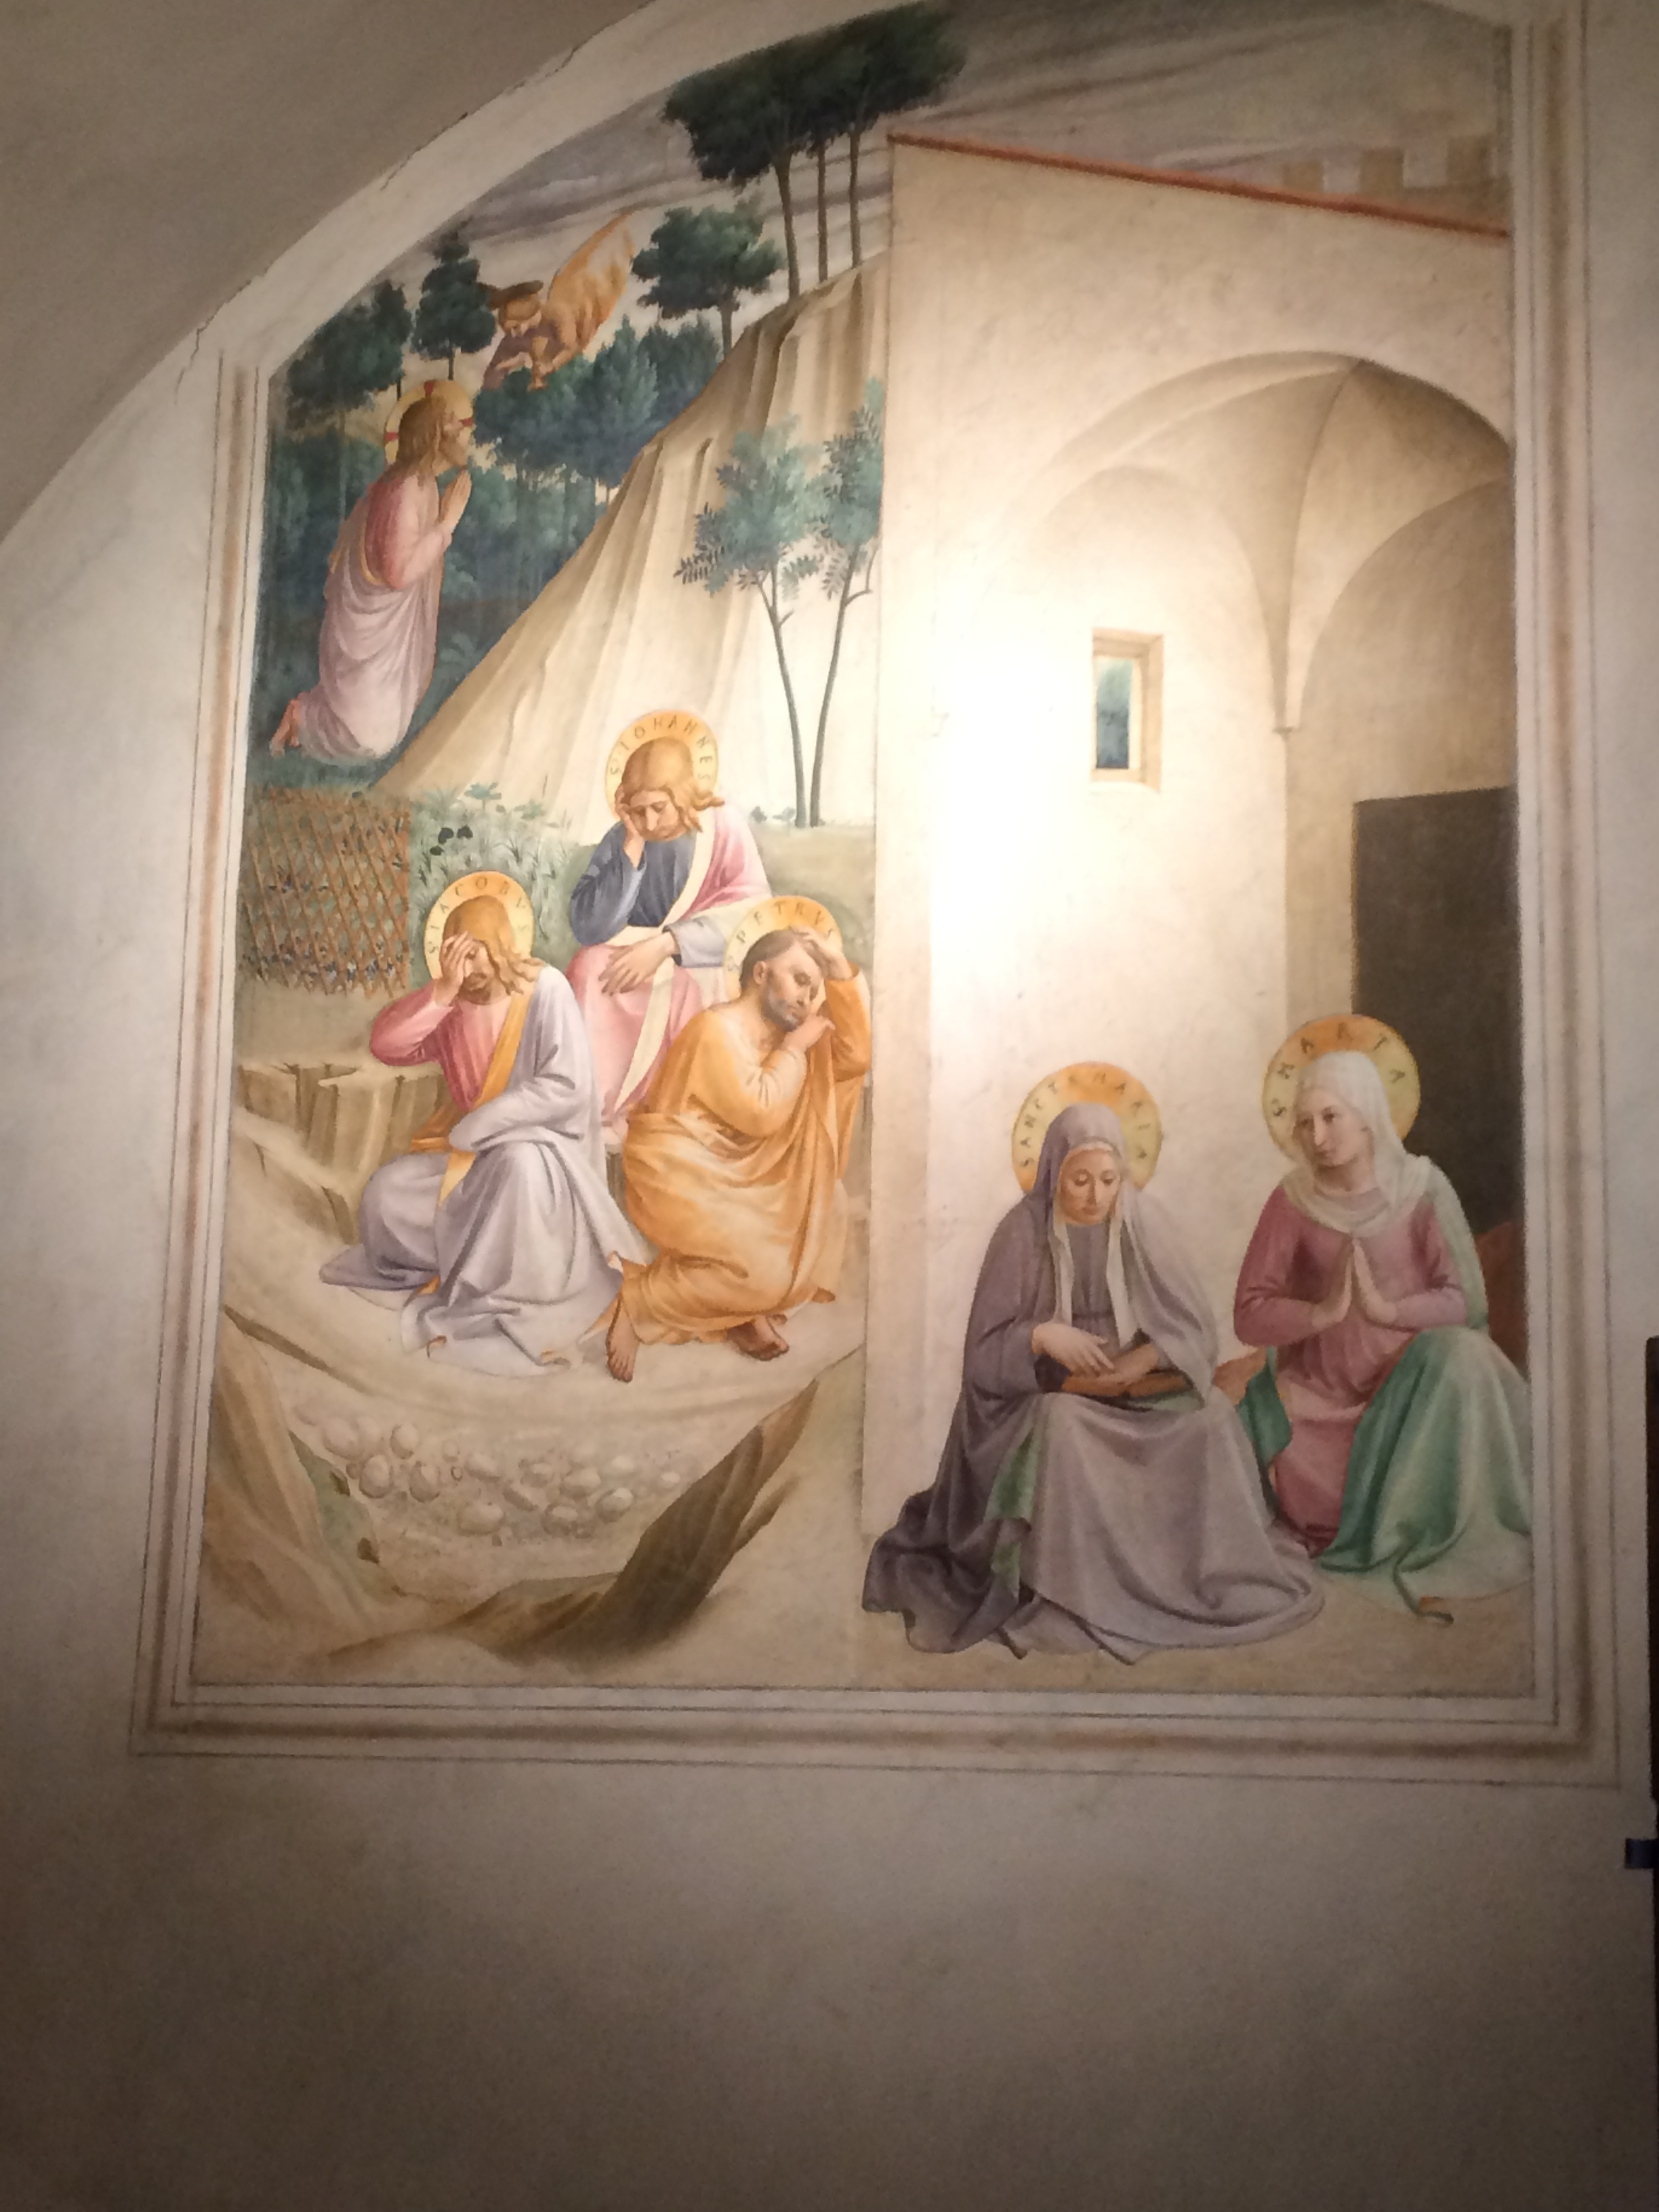 Jesus praying in Gethsemane, disciples asleep, Mary & Martha awake in prayer (Fra Angelico, Monastery San Marco, Florence [author's photograph]